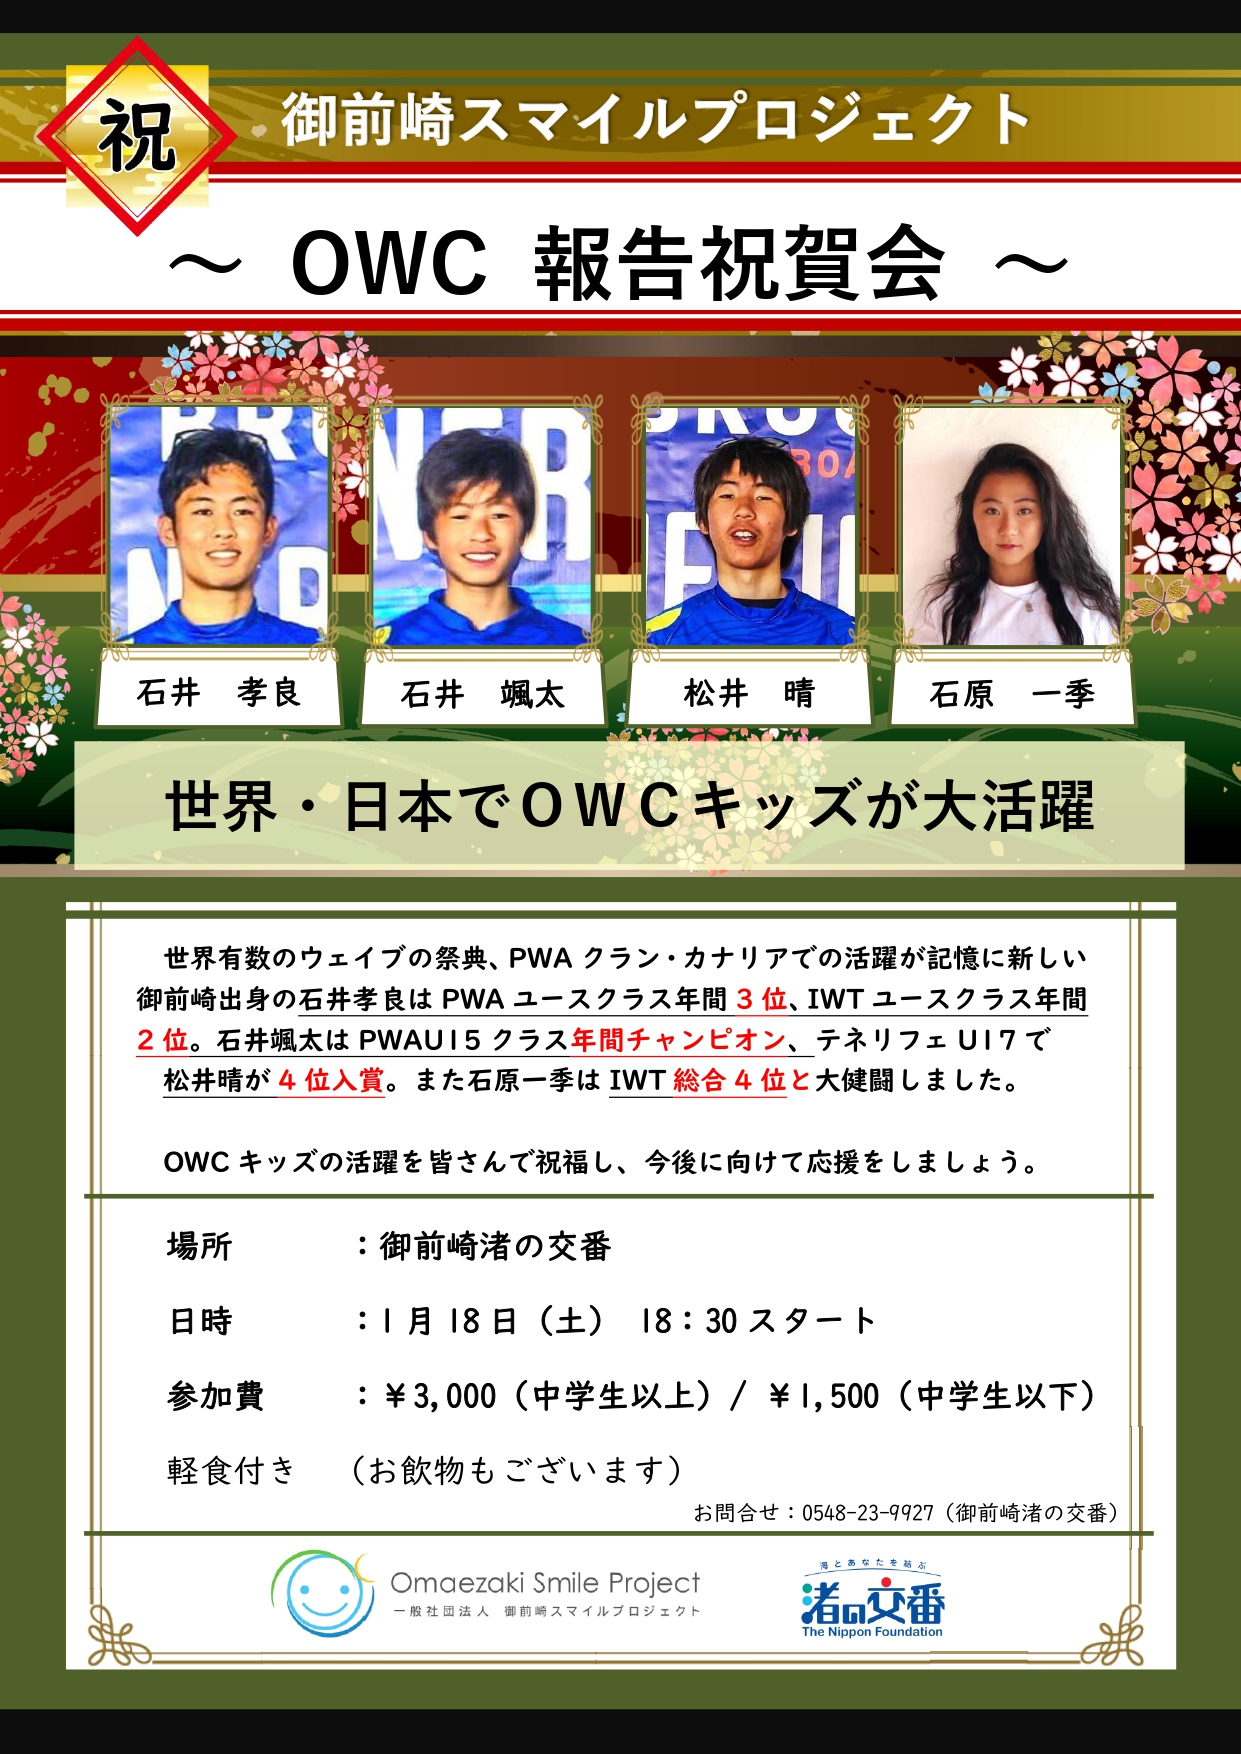 OWC祝賀会 チラシ_page-0001